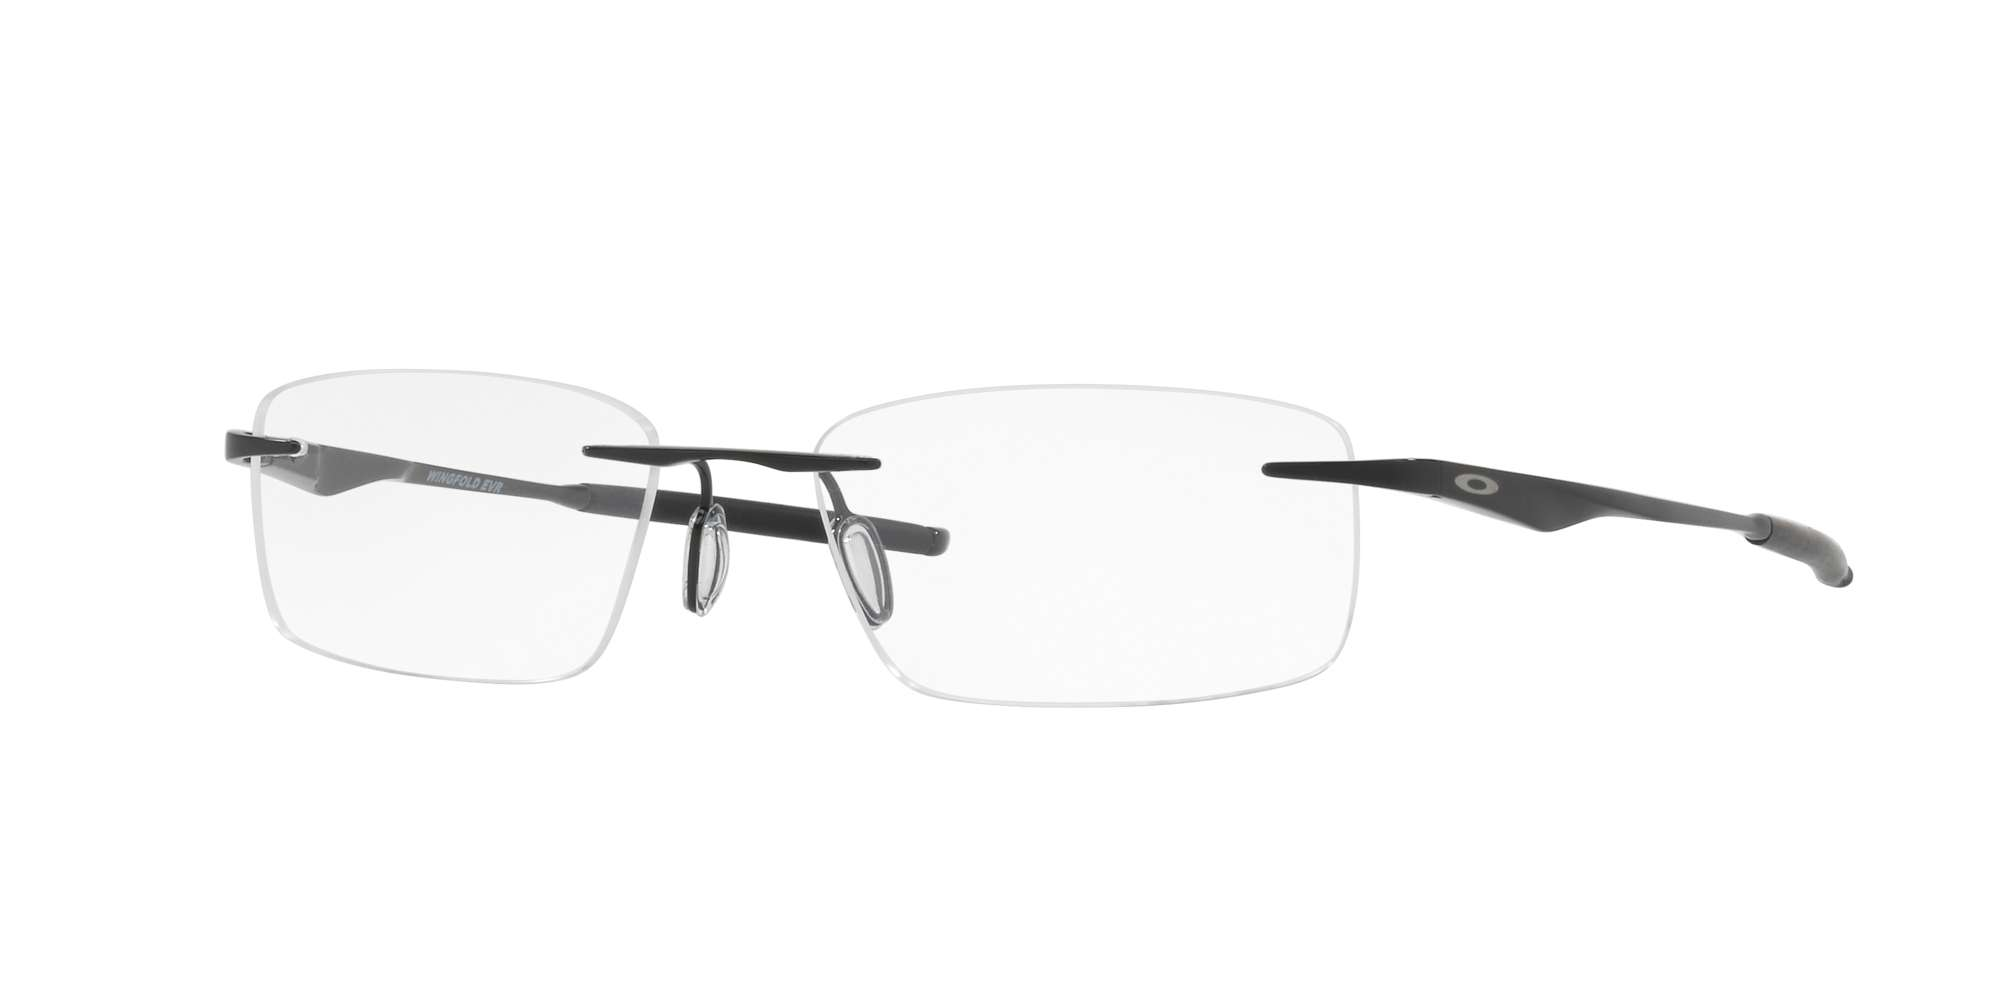 POLISHED BLACK / CLEAR lenses